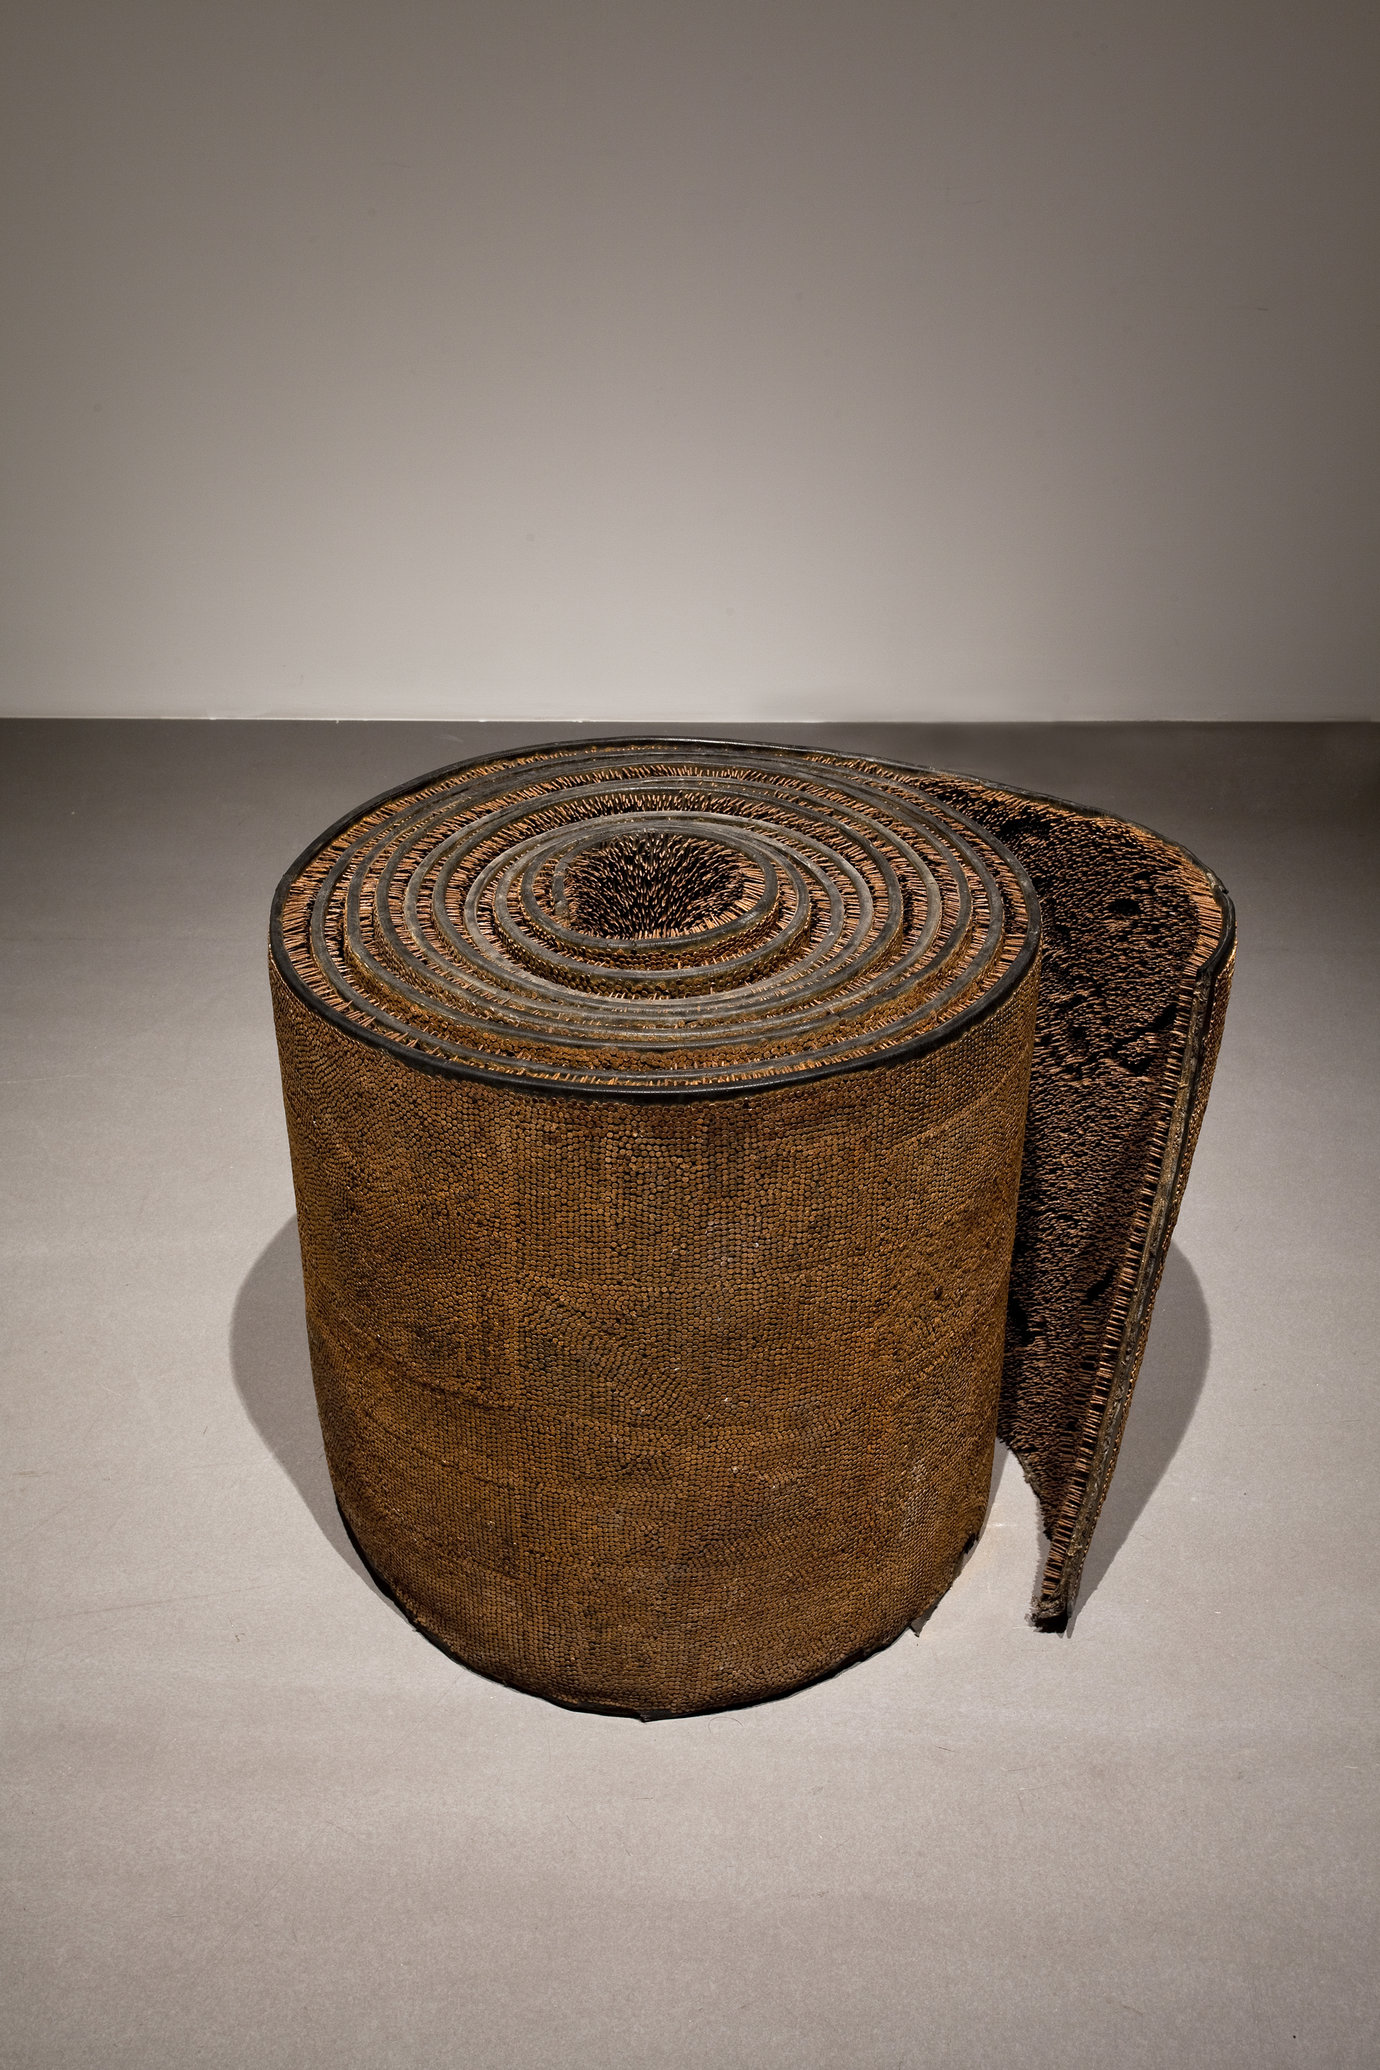 , 1996. Rubber, nails, 66 x 72 x 72 cm.